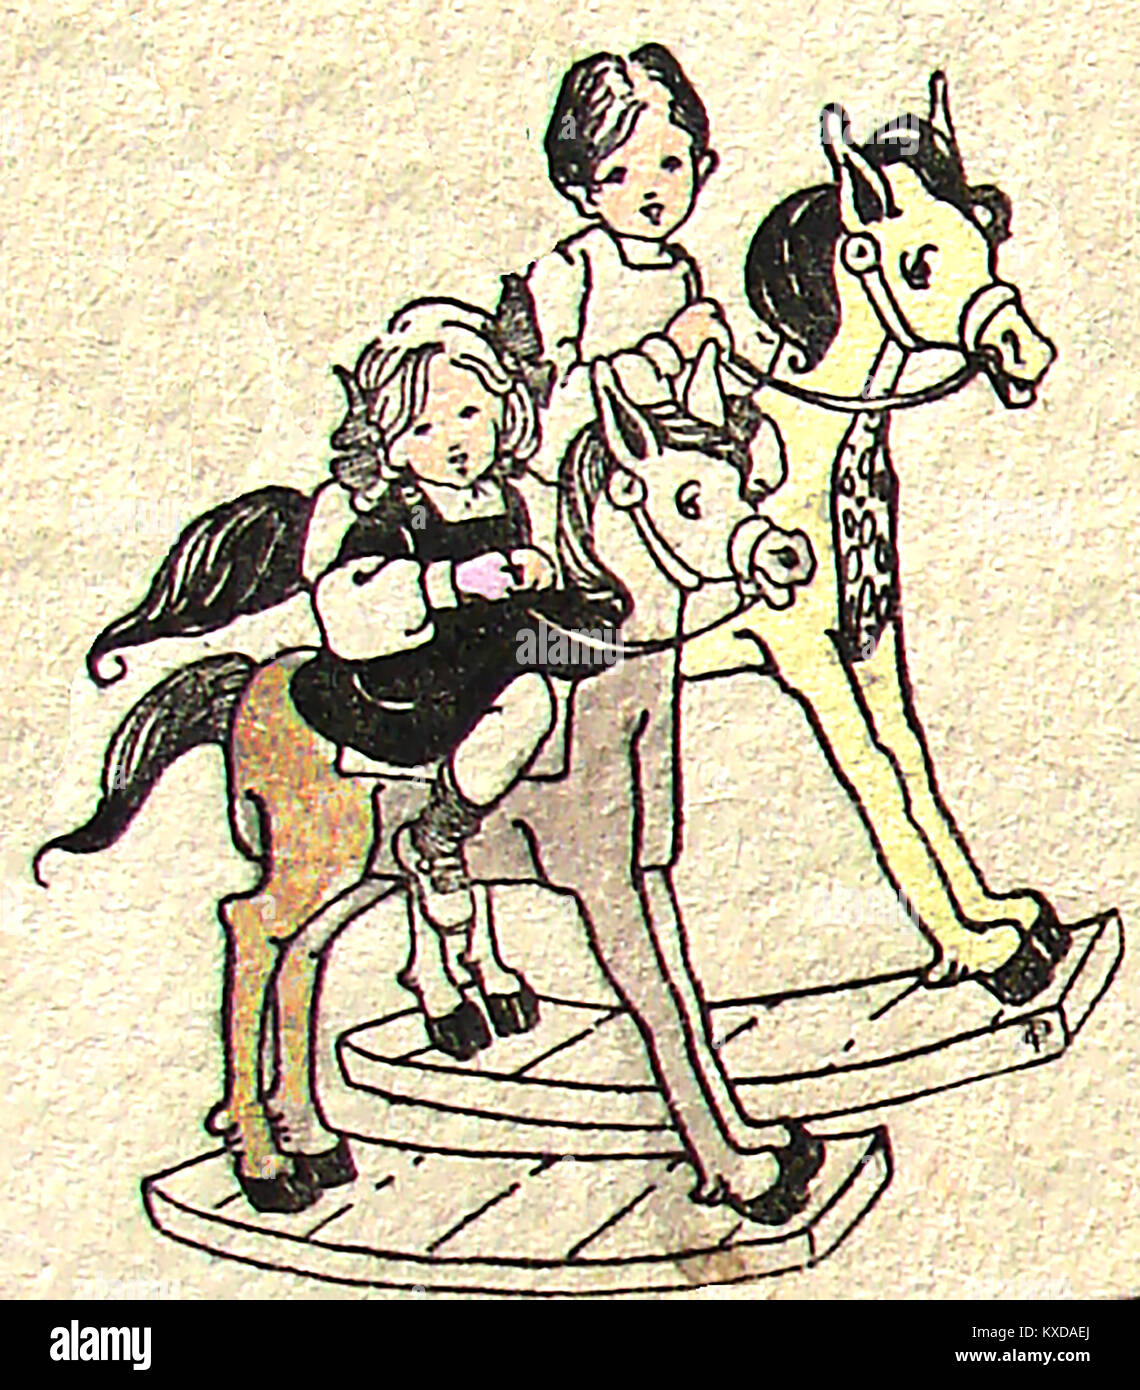 Children at play  in earlier times - Two girls on rocking horses - Stock Image